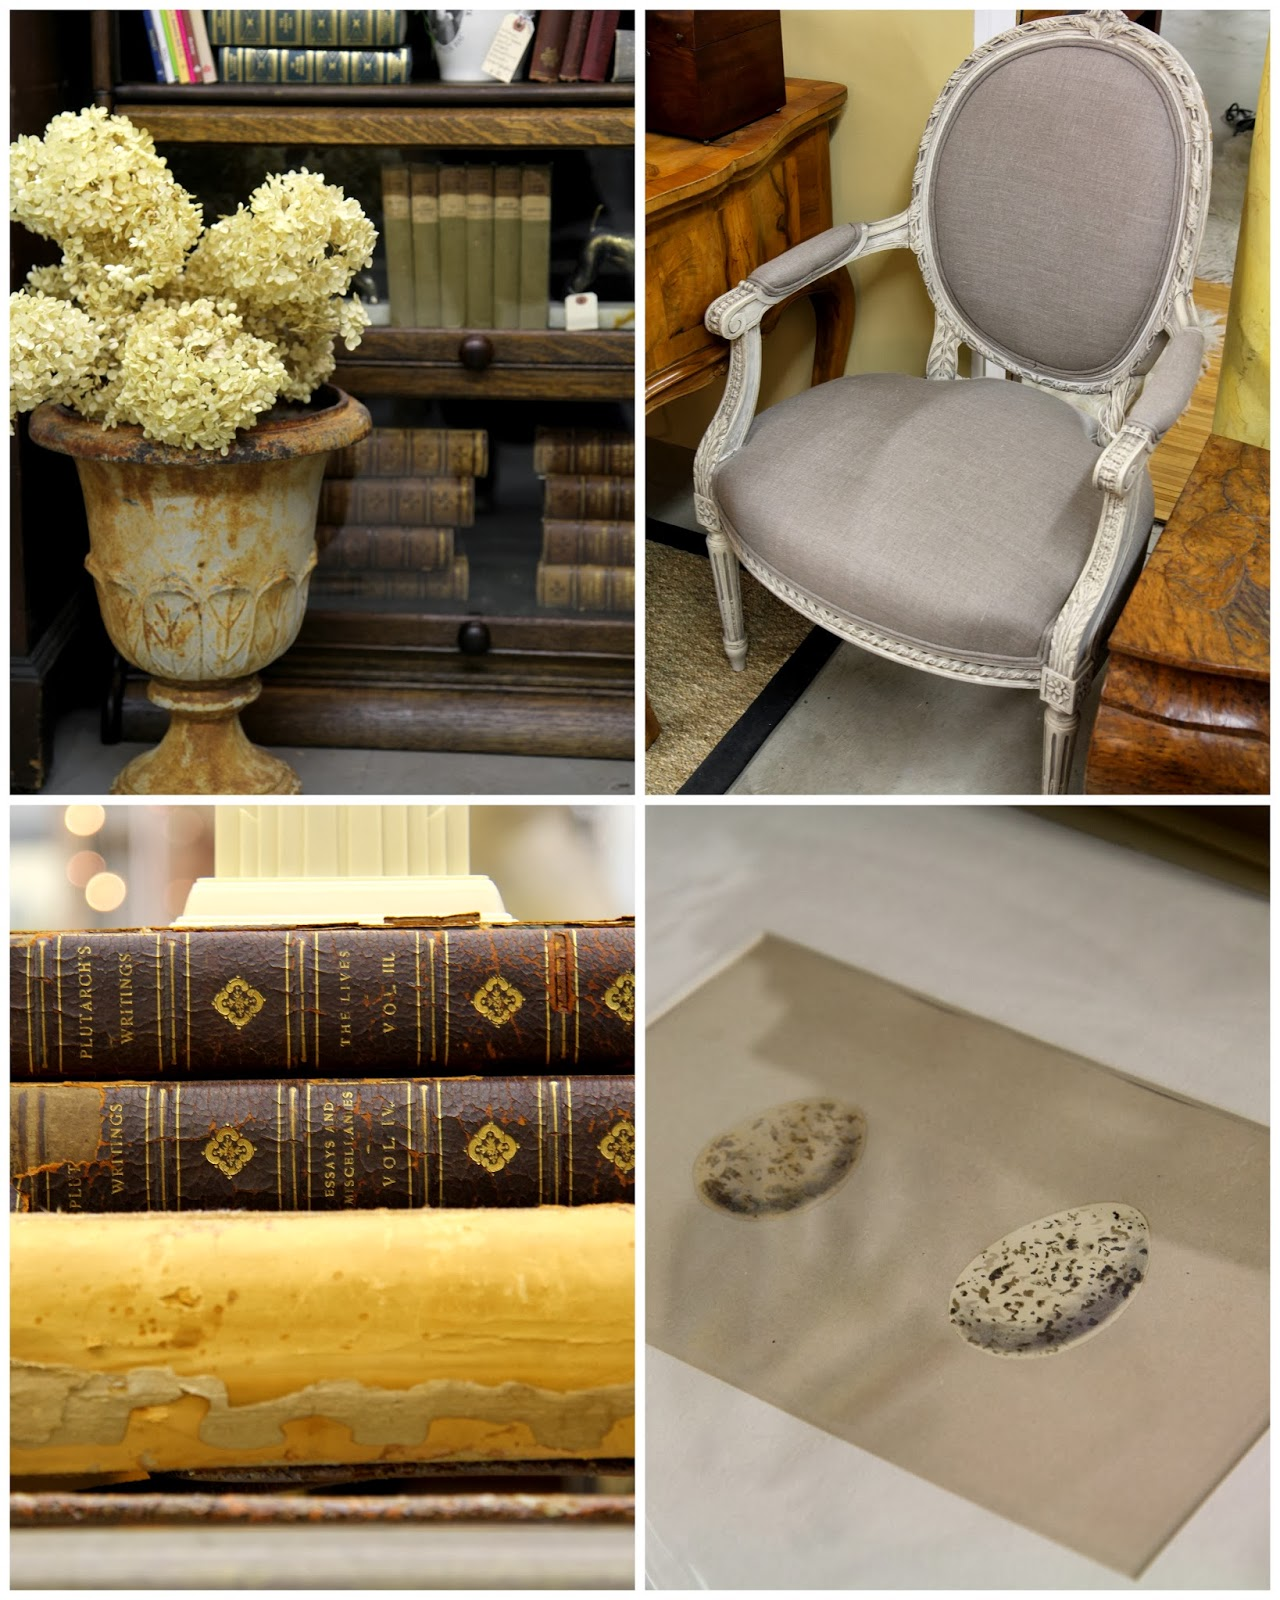 Antique urn, linen chair, old books, and egg print